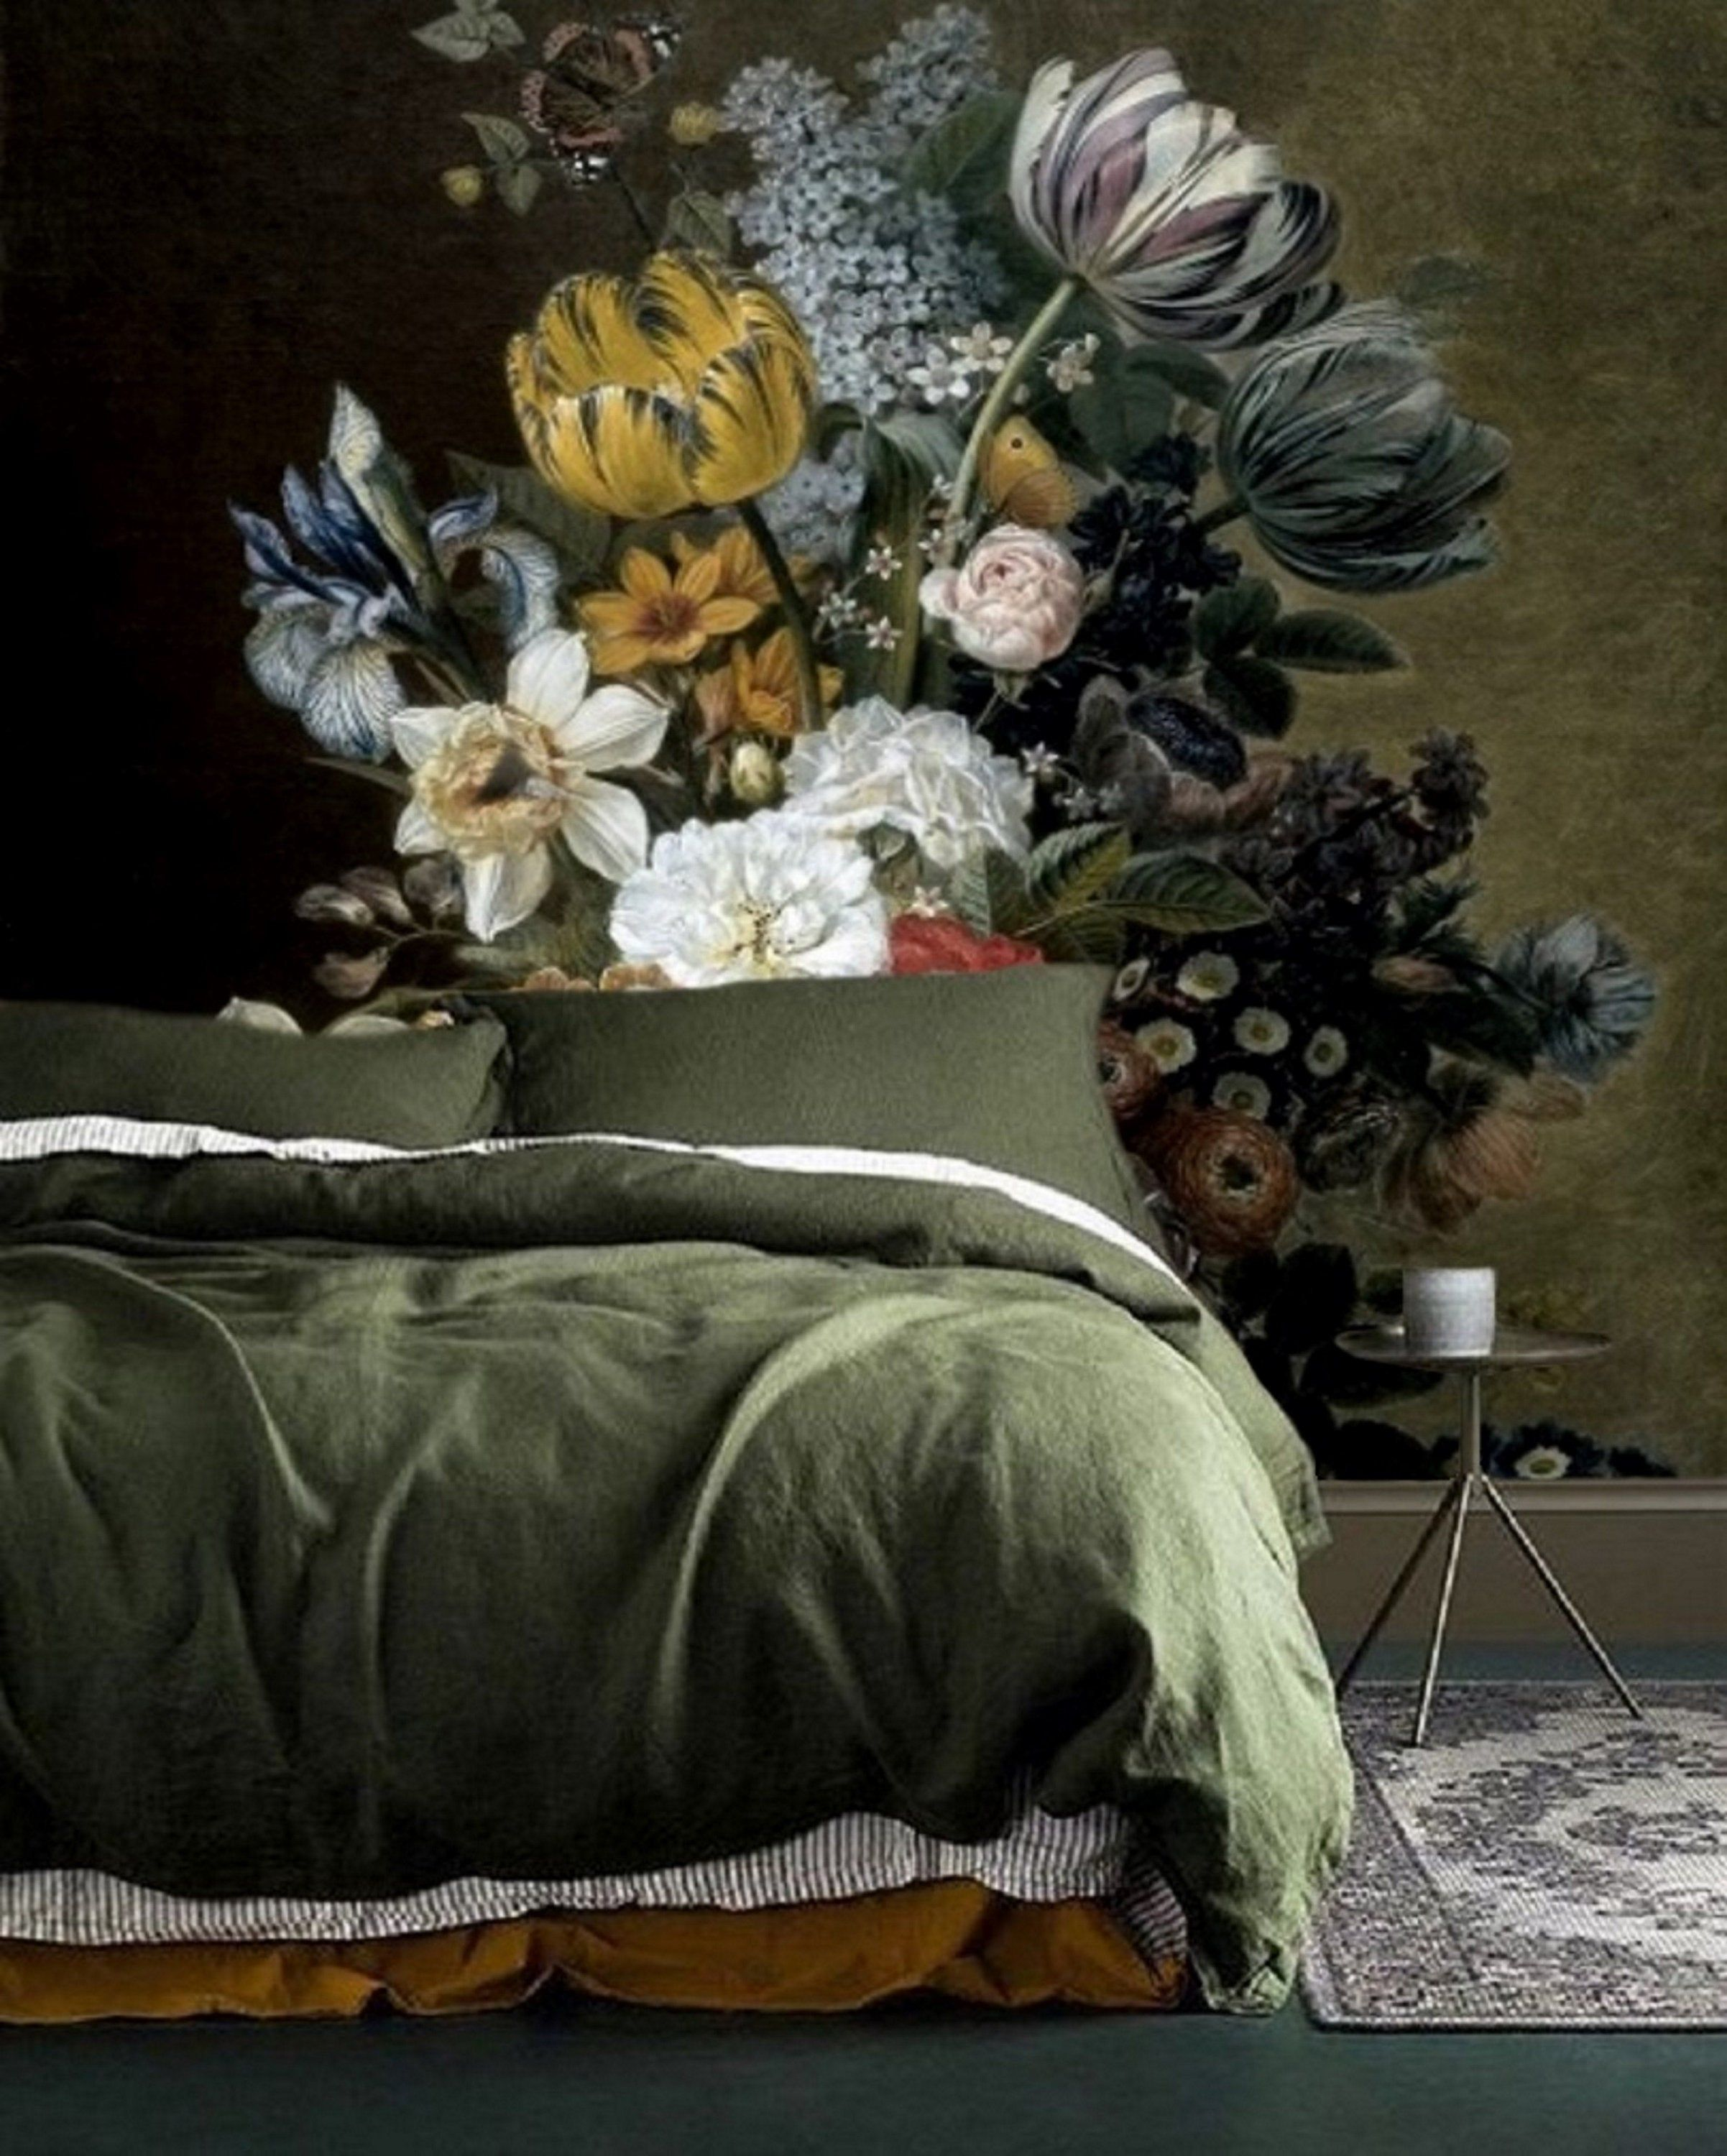 Removable Wallpaper Floral Wall Mural Peel and Stick